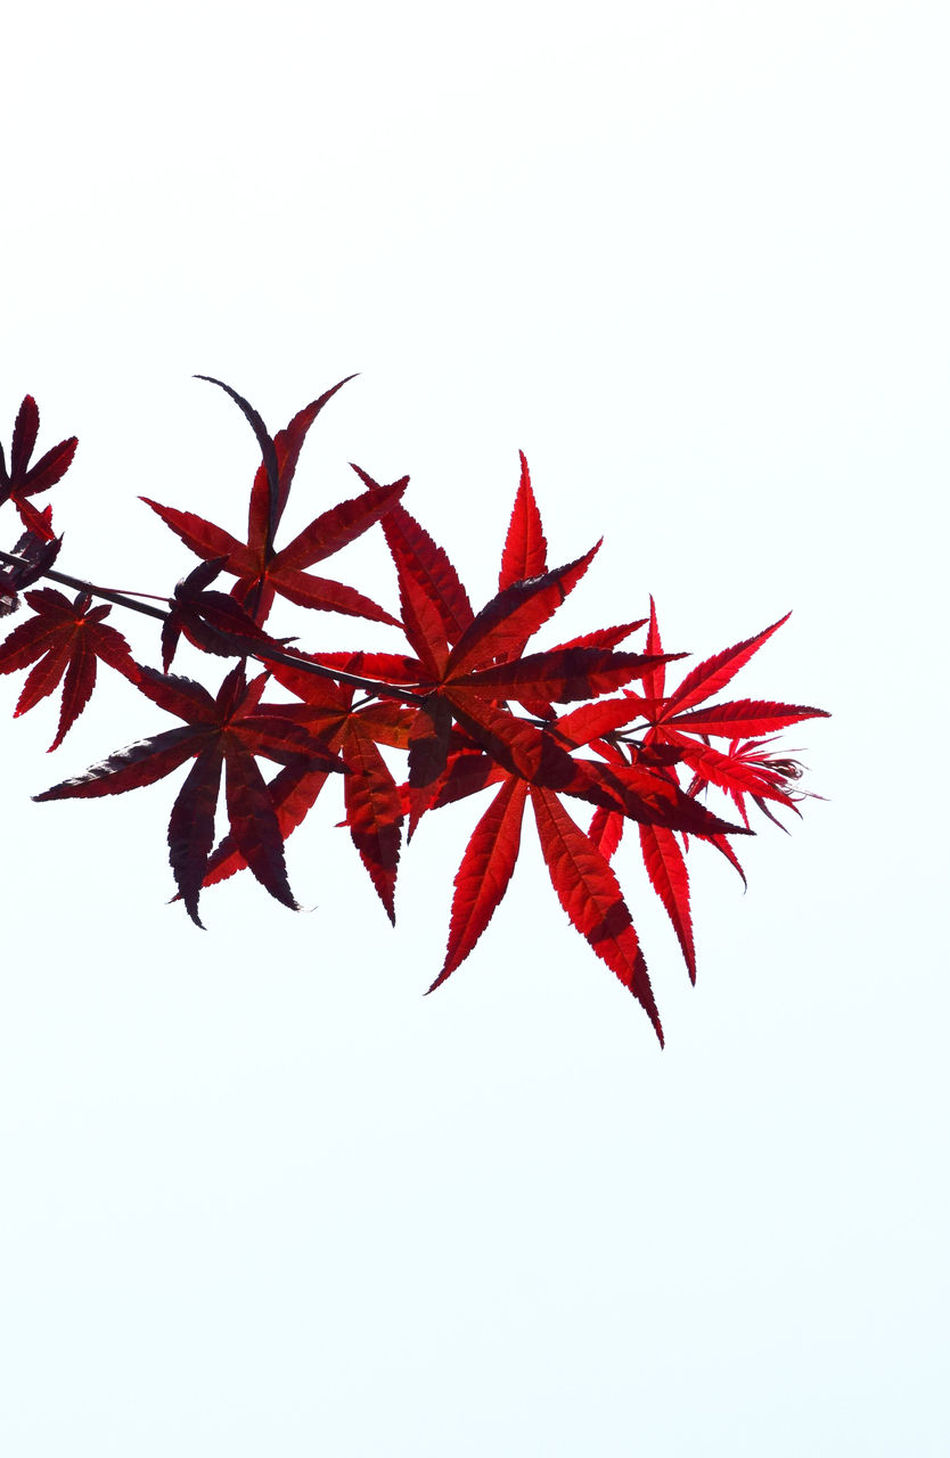 Autumn Change Clear Sky Close-up Copy Space Day Leaf Maple Maple Leaf Nature No People Outdoors Red Studio Shot White Background